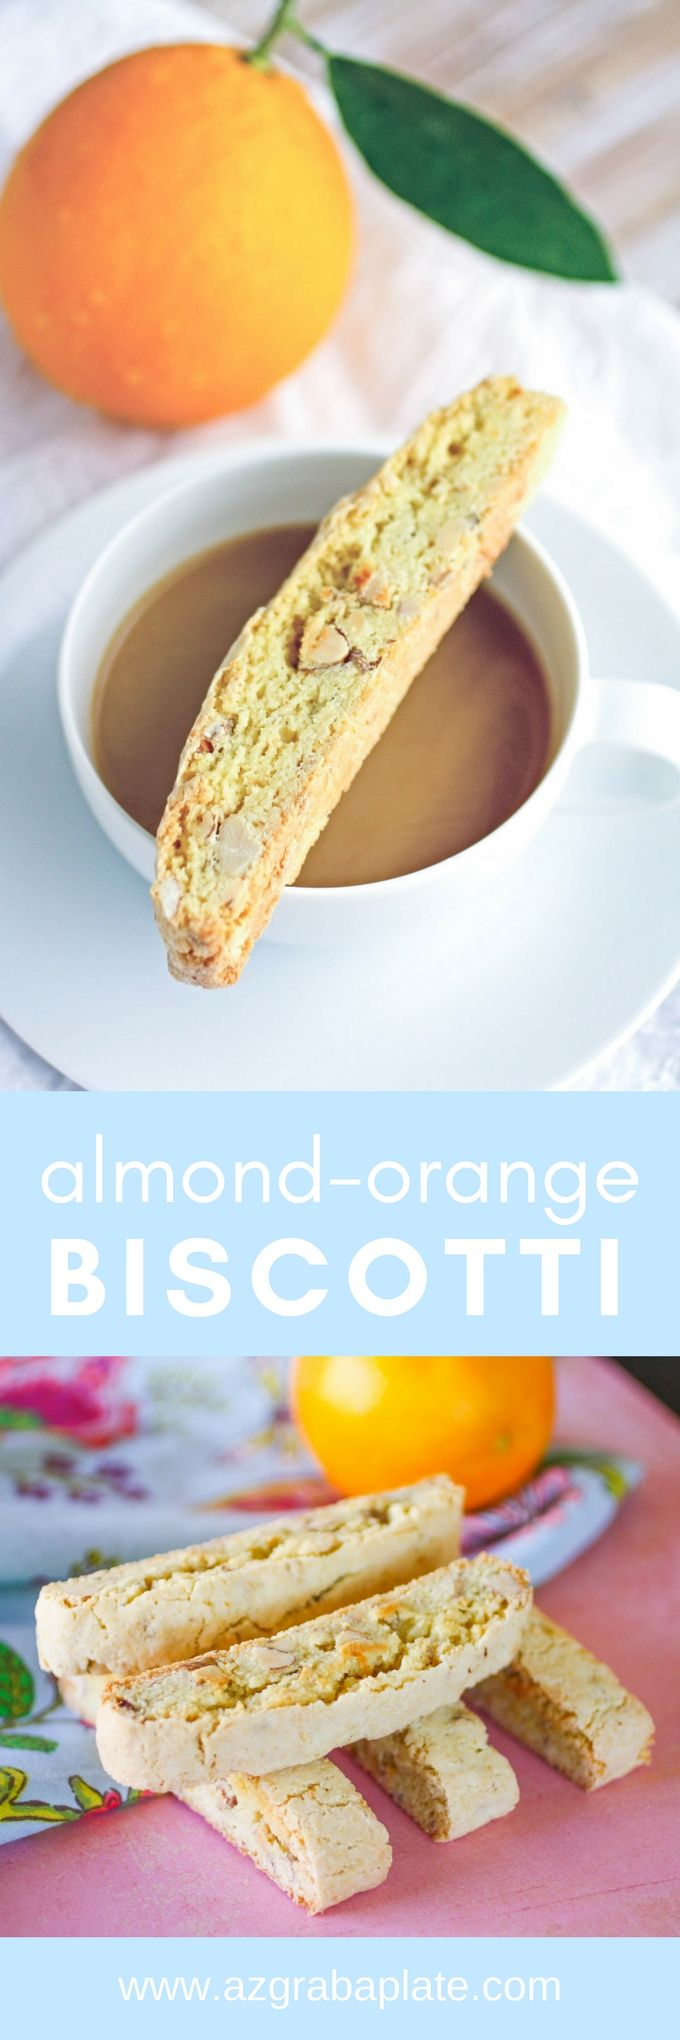 Almond-Orange Biscotti are great, Italian-inspired cookies you'll love for the holidays. These biscotti cookies are amazing -- perfect for dunking, too!